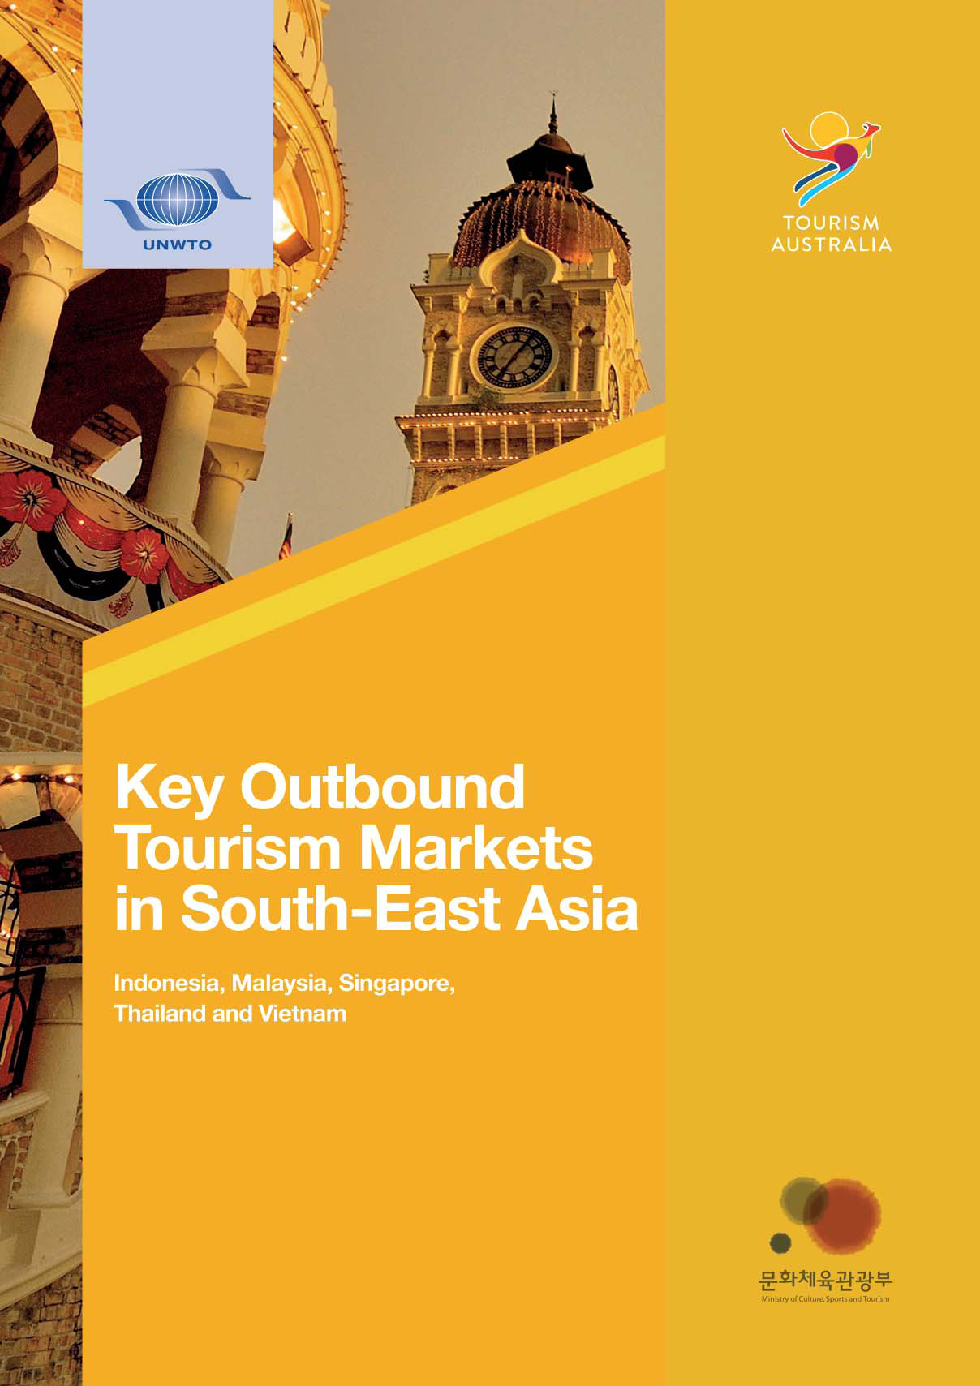 Key Outbound Tourism Markets in South-East Asia – Indonesia, Malaysia, Singapore, Thailand and Vietnam